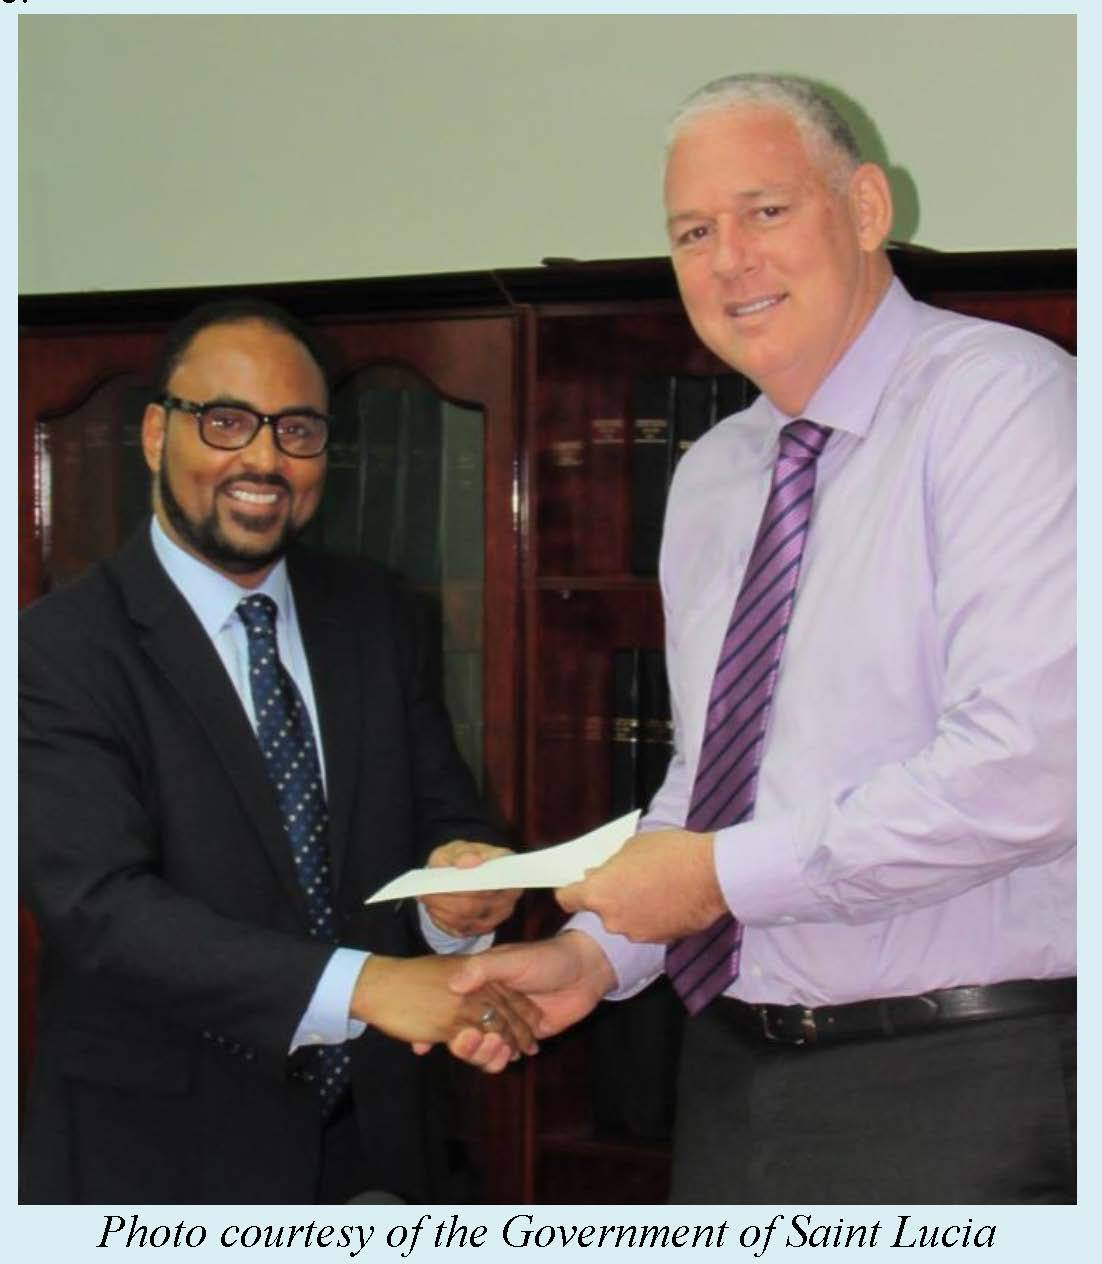 Saint Lucia's Prime Minister Hon. Allen Chastanet receives a cheque from CCRIF CEO Mr. Isaac Anthony